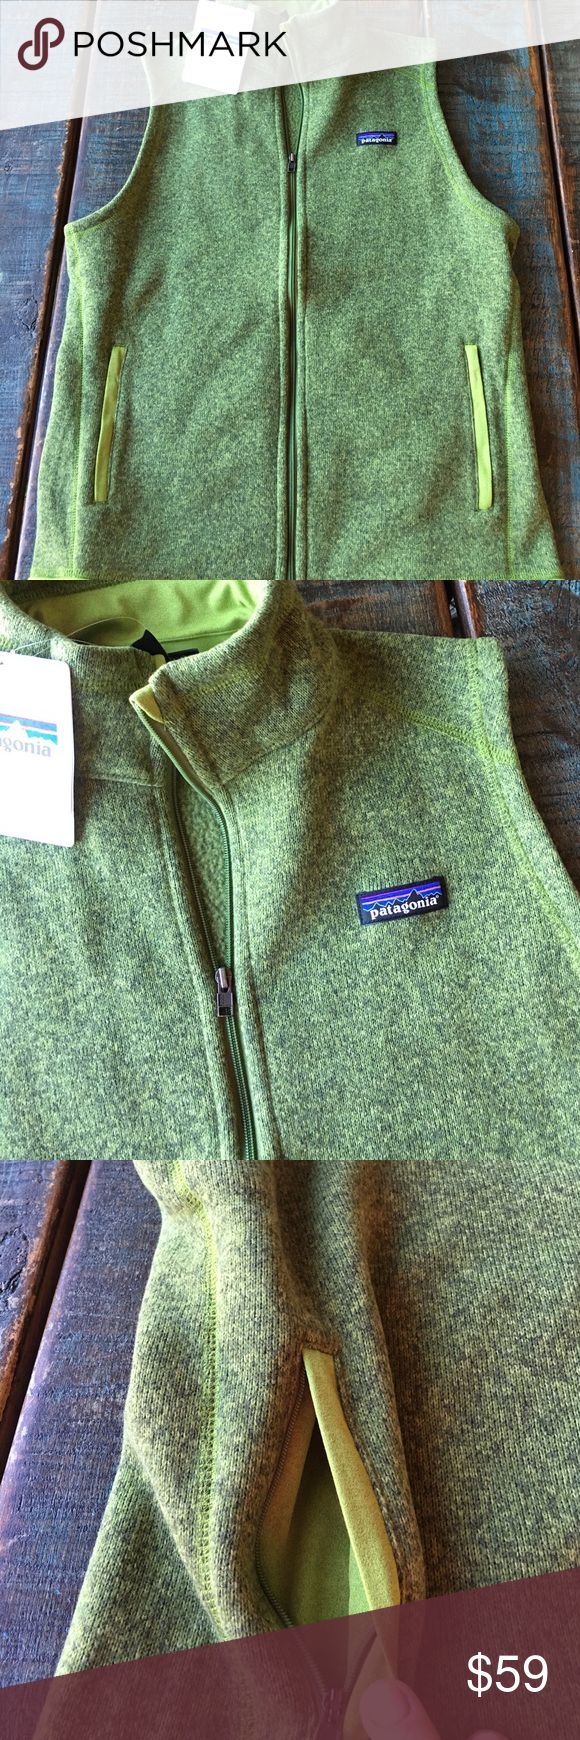 25  cute Patagonia clearance ideas on Pinterest | Patagonia ...